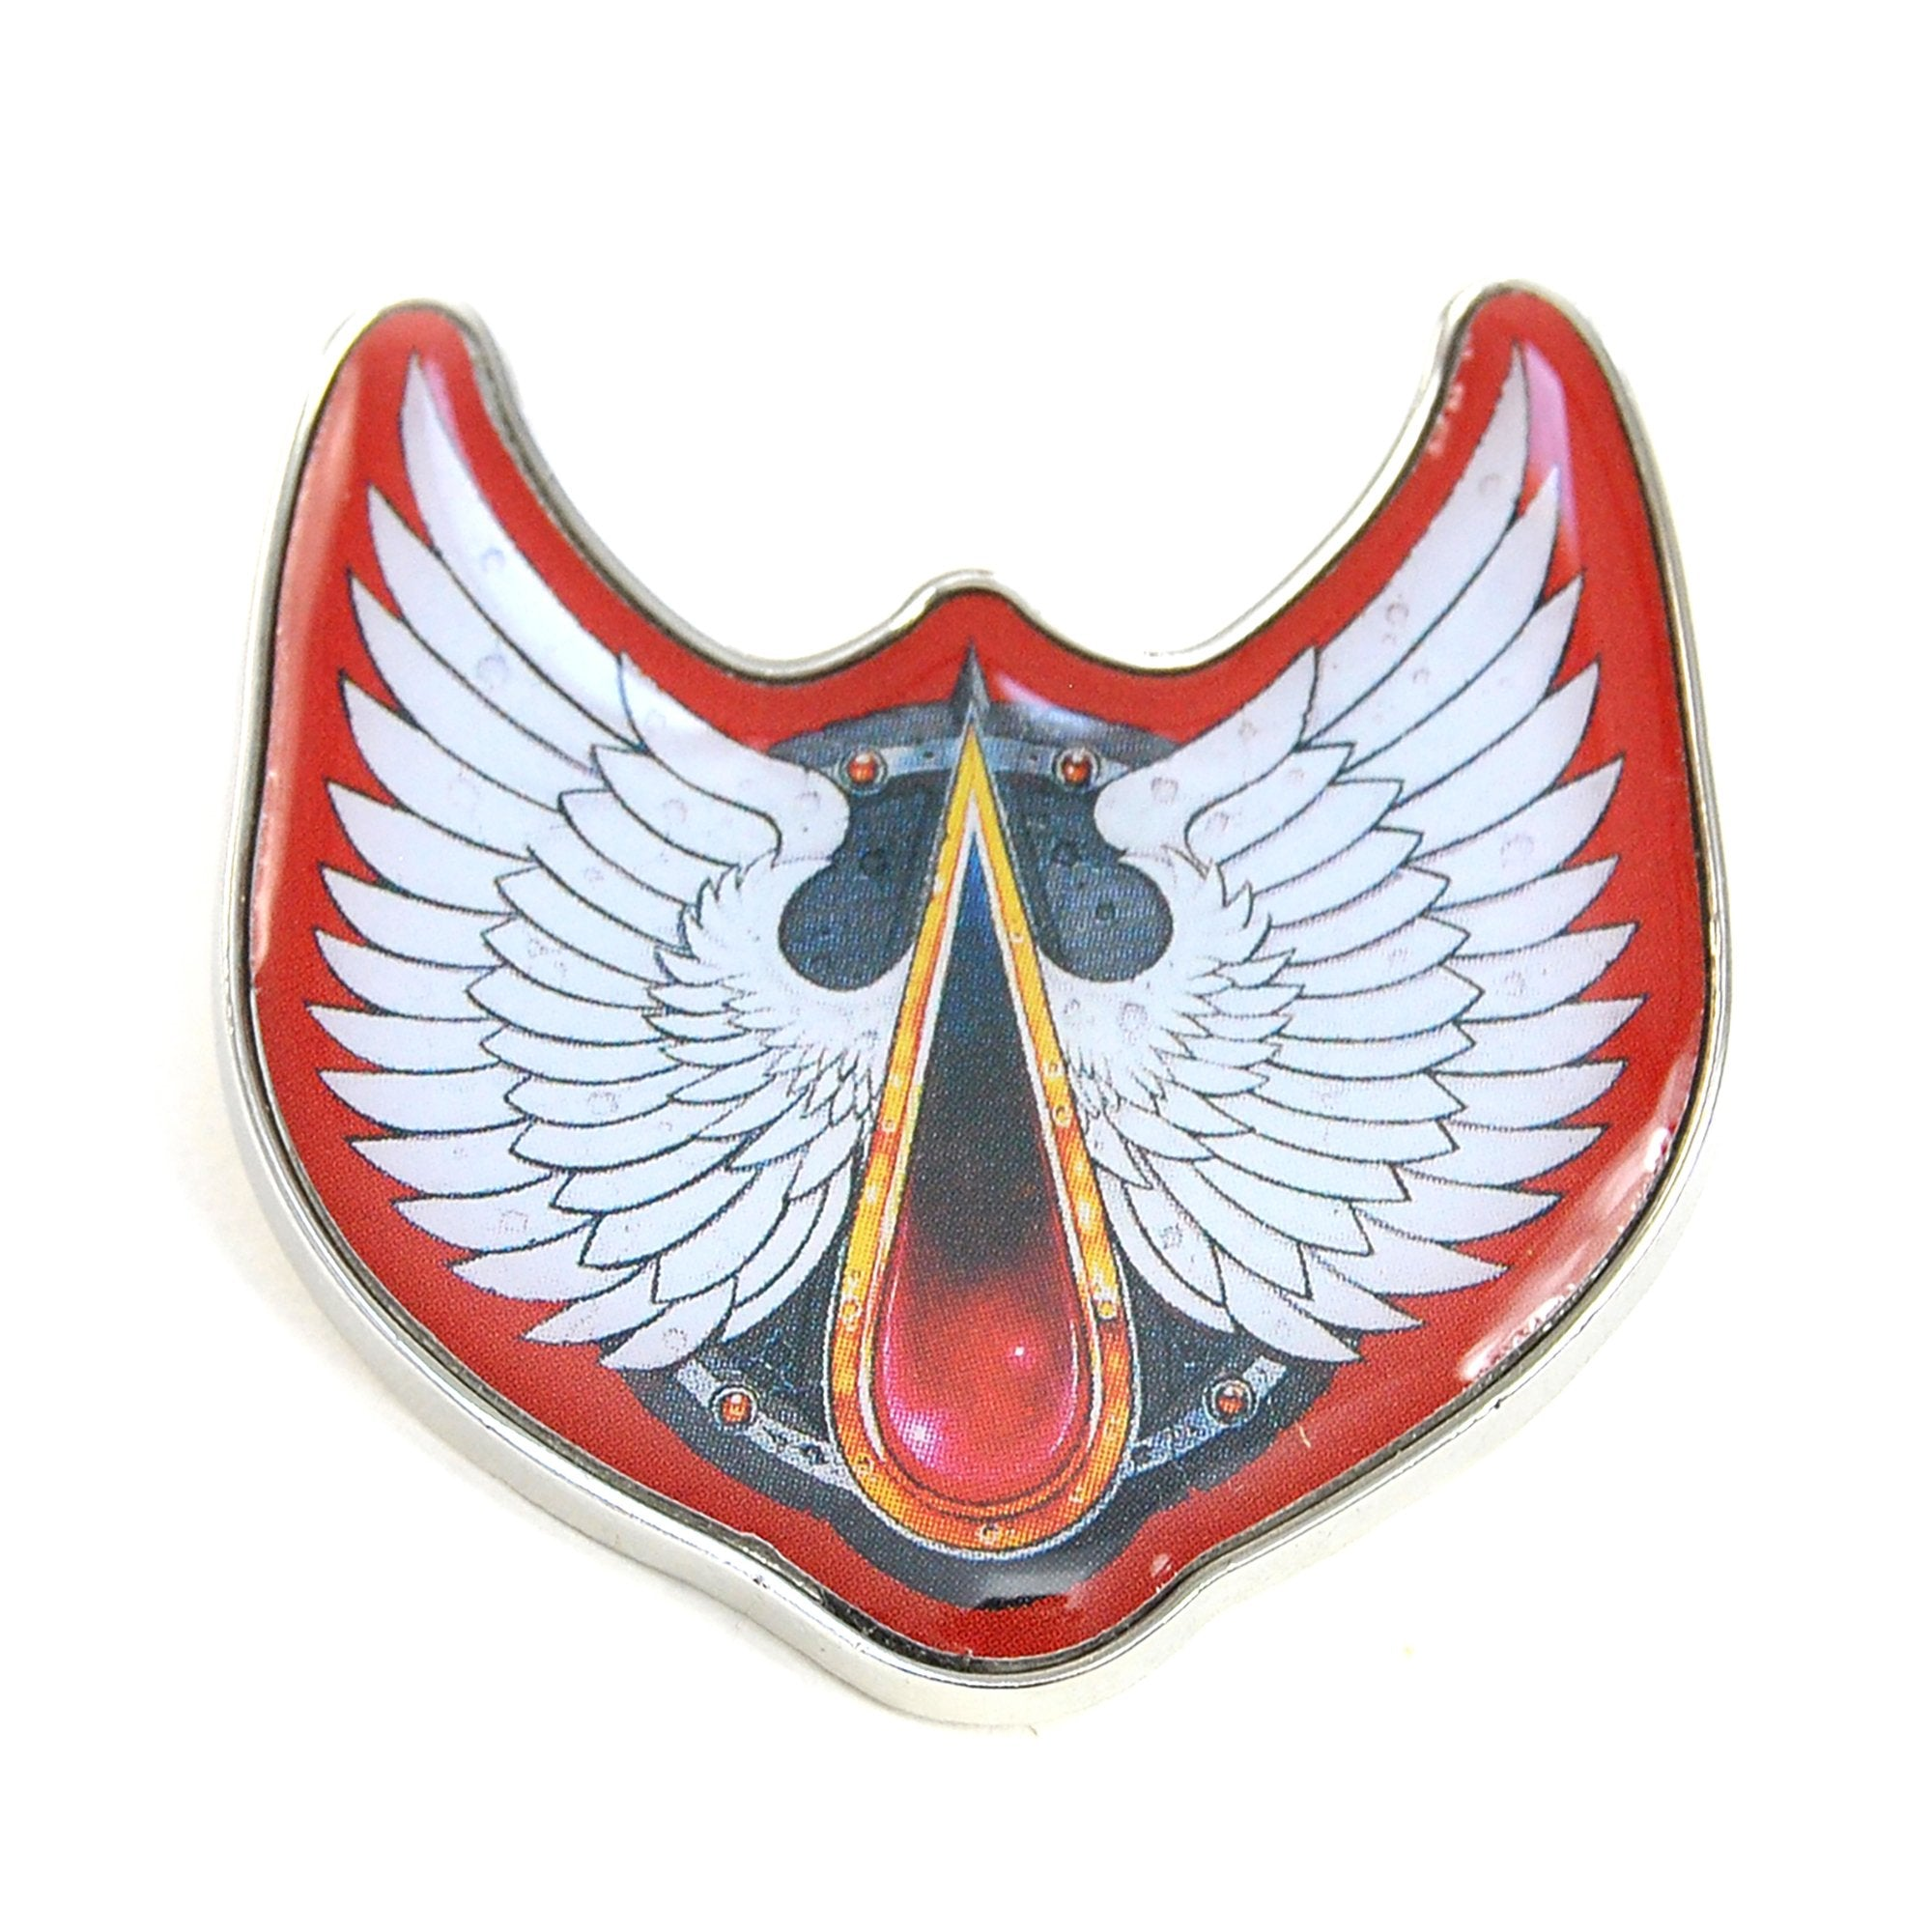 Warhammer 40,000 Pin Badge - Blood Angels - Half Moon Bay US